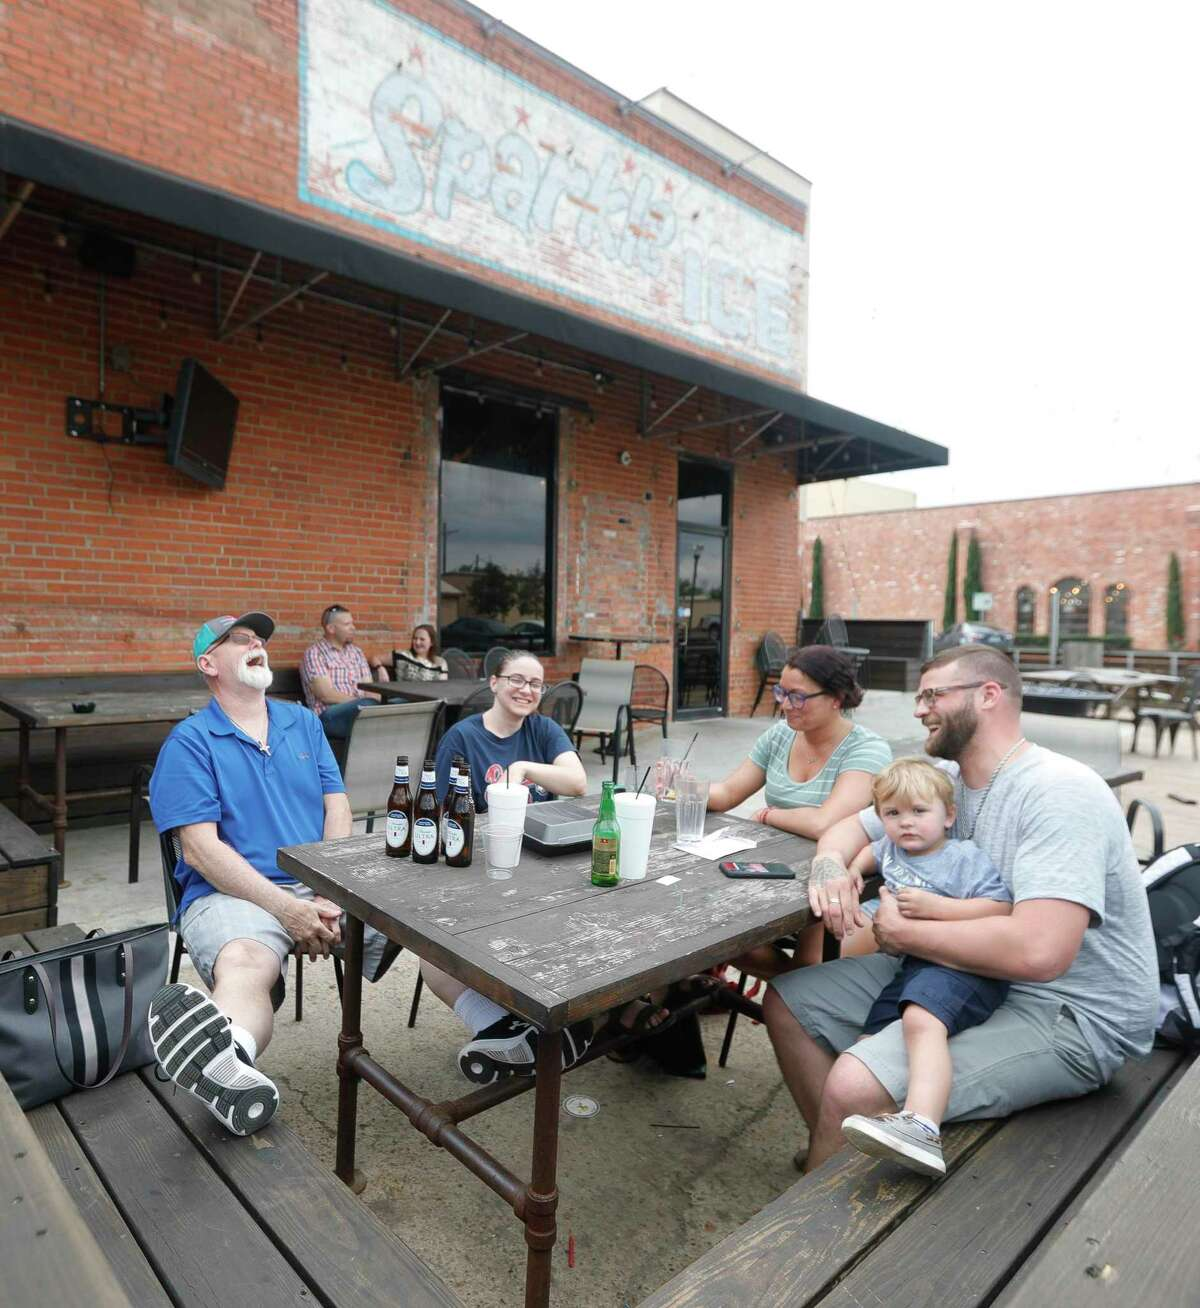 """Rodney Diel, left, shares a laugh with Jessica Wiley, Brittney Bottoms, Dalton Demny and his two-year-old son, Deklyn, as the family enjoys an afternoon at Pacific Yard House, Wednesday, March 18, 2020, in Conroe. Gov. Greg Abbott announced Thursday, Sept. 17, that most of Texas will be able to loosen some coronavirus restrictions, allowing many businesses - including restaurants - to increase their capacity to 75%, as soon as Monday, Sept. 21. At the same time, Abbott said the state was not yet ready to reopen bars, saying they are """"nationally recognized as COVID-spreading locations."""" He stressed, though, that the state is looking for ways to let bars reopen safely."""